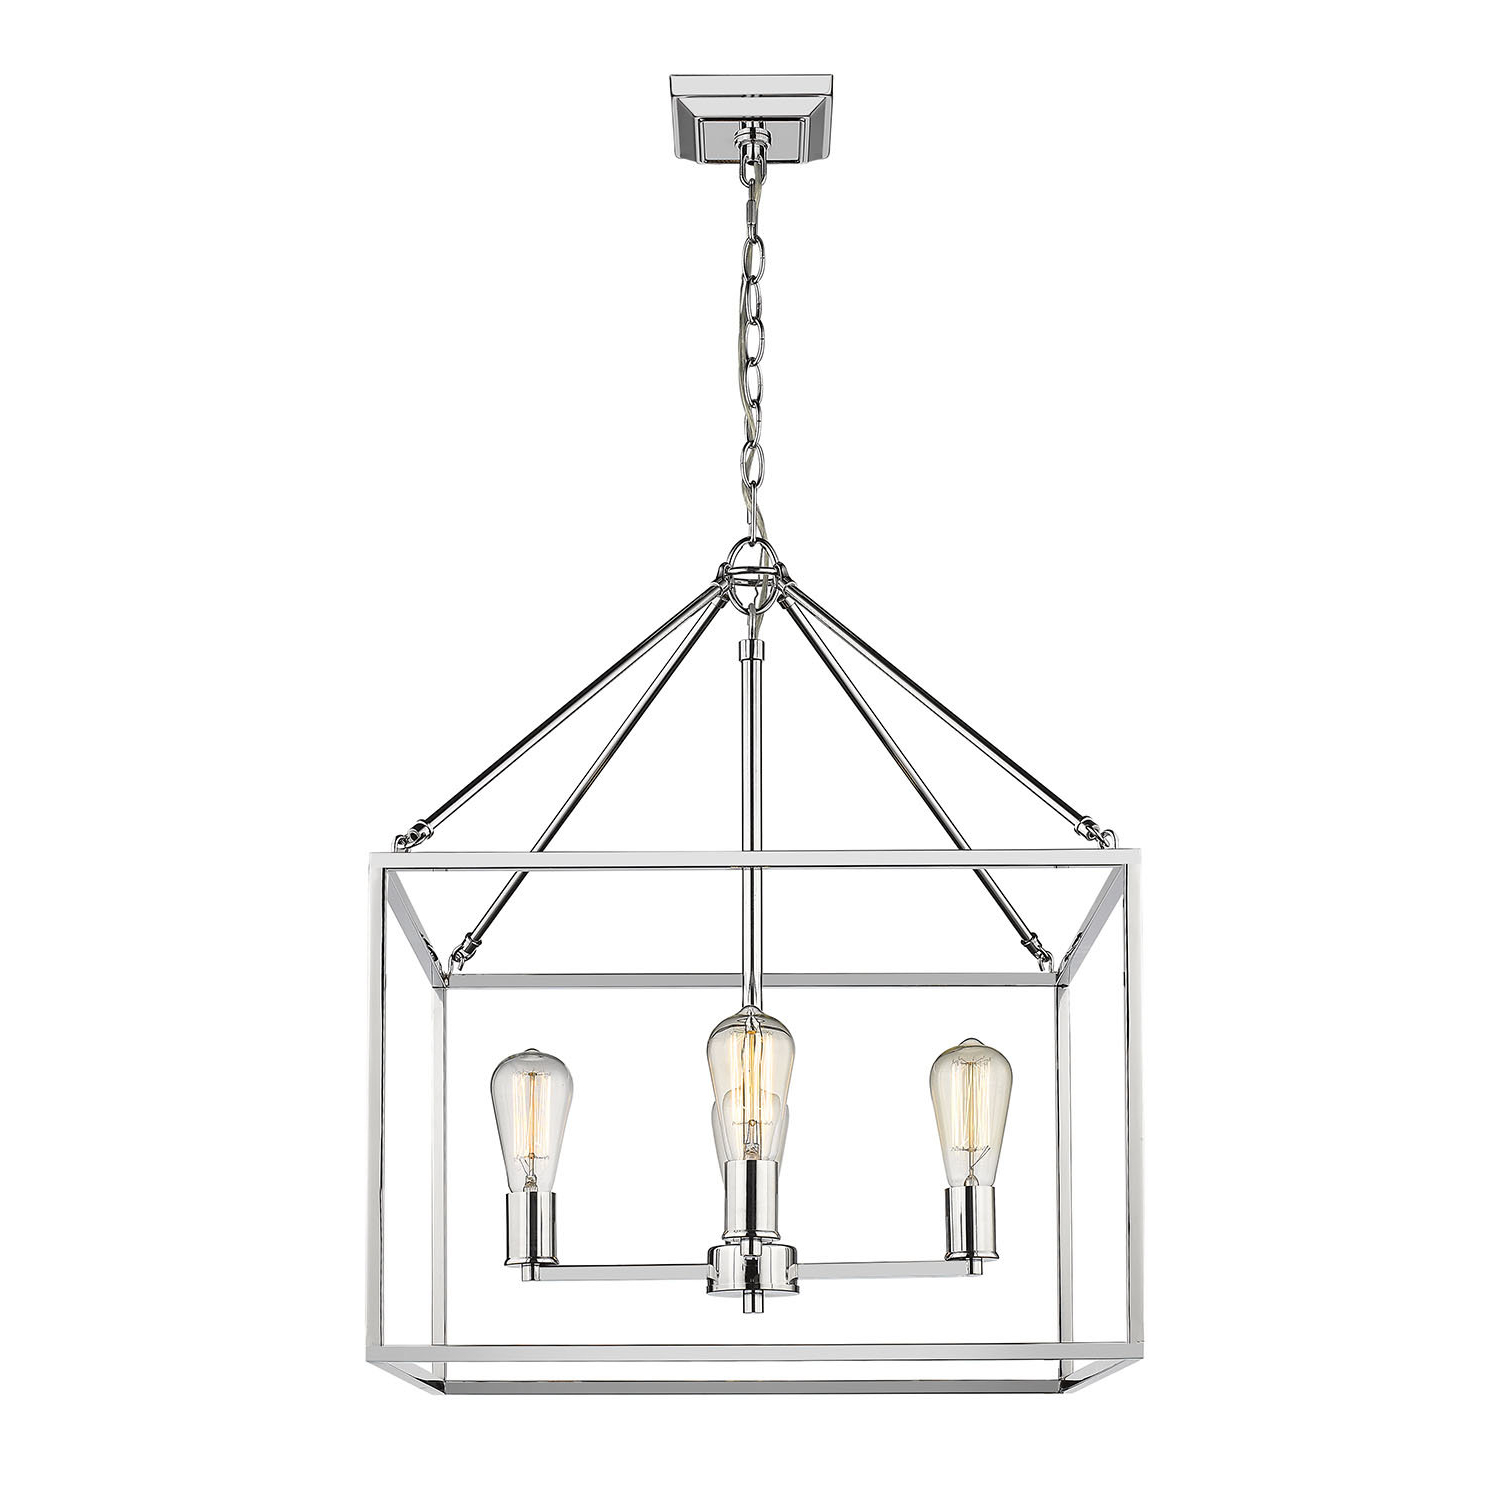 Popular Zabel 4 Light Lantern Square / Rectangle Pendant With Regard To Odie 4 Light Lantern Square Pendants (View 18 of 25)